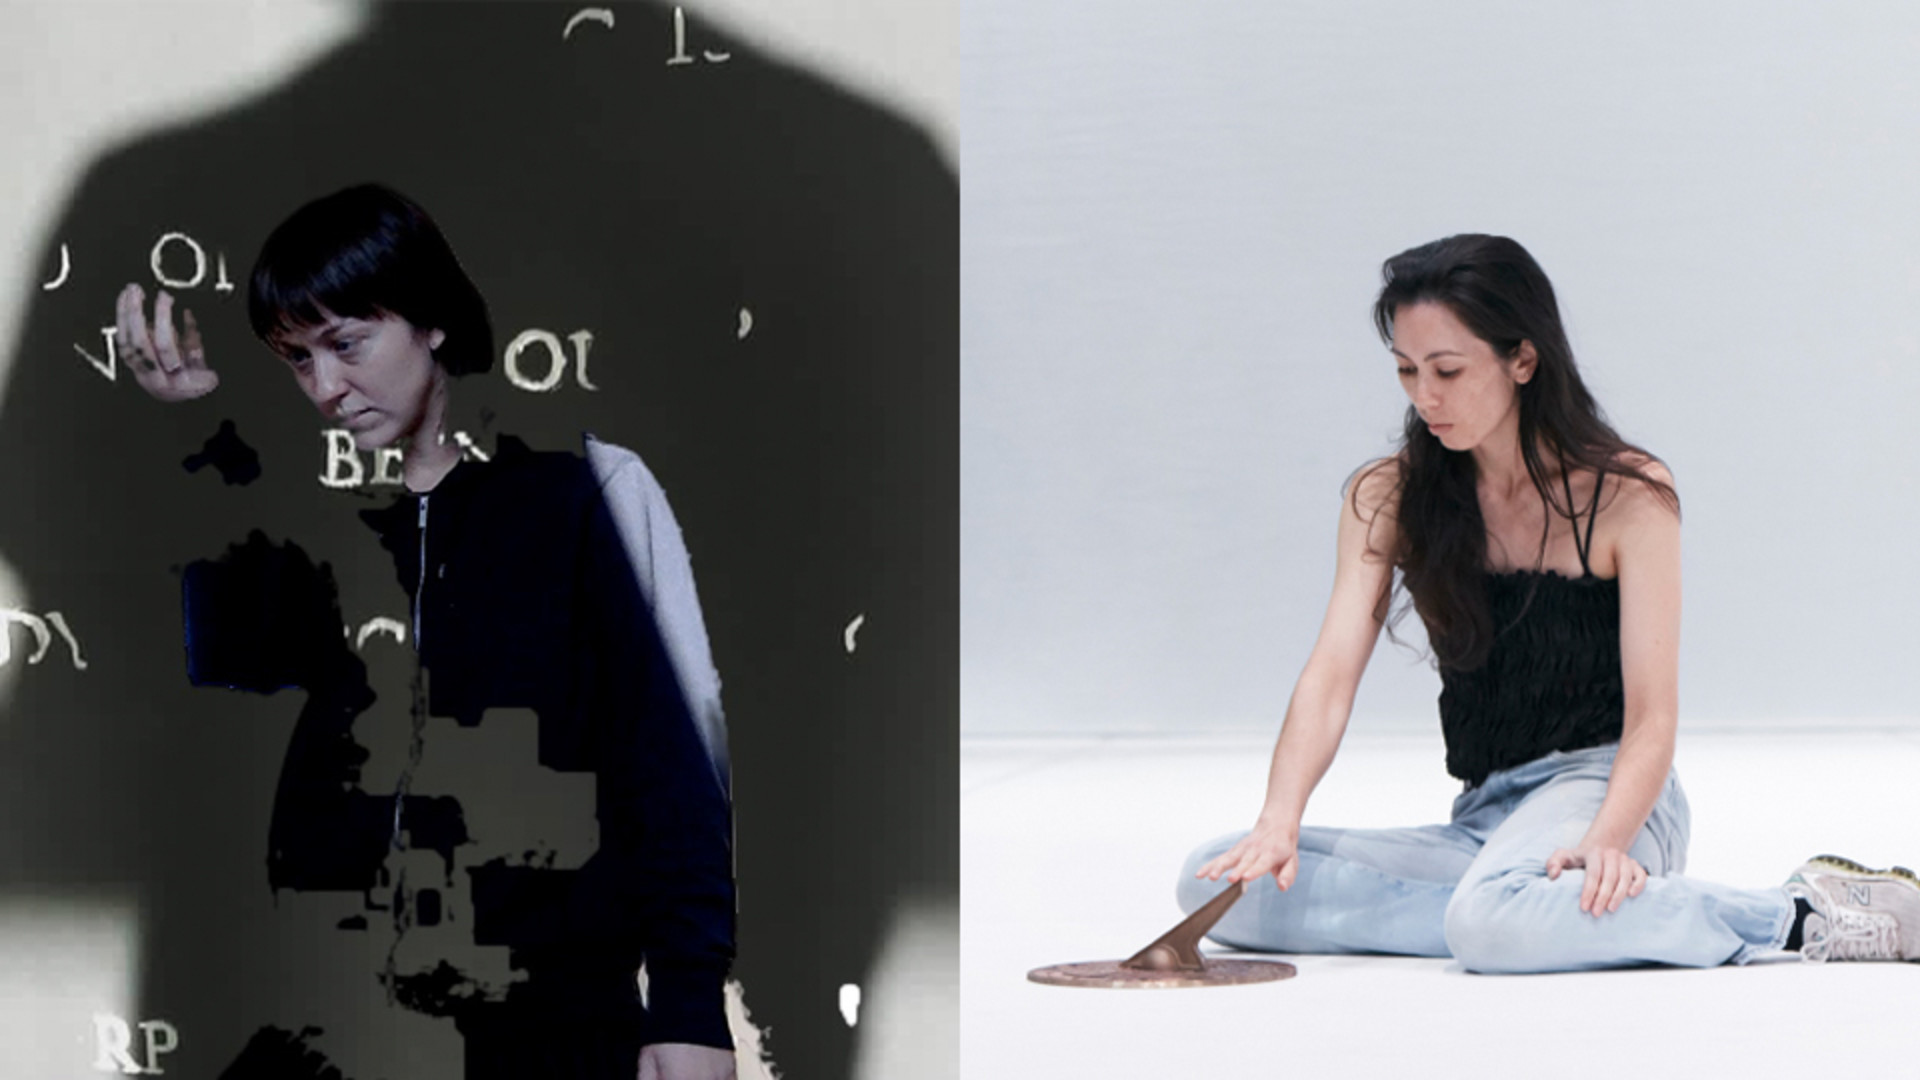 Two images are side by side. On the left, a woman stares down at her palm against a backdrop of a grey wall with white letters scattered across it. On the right, a woman sits on a white floor with her index finger placed on a brass sundial.